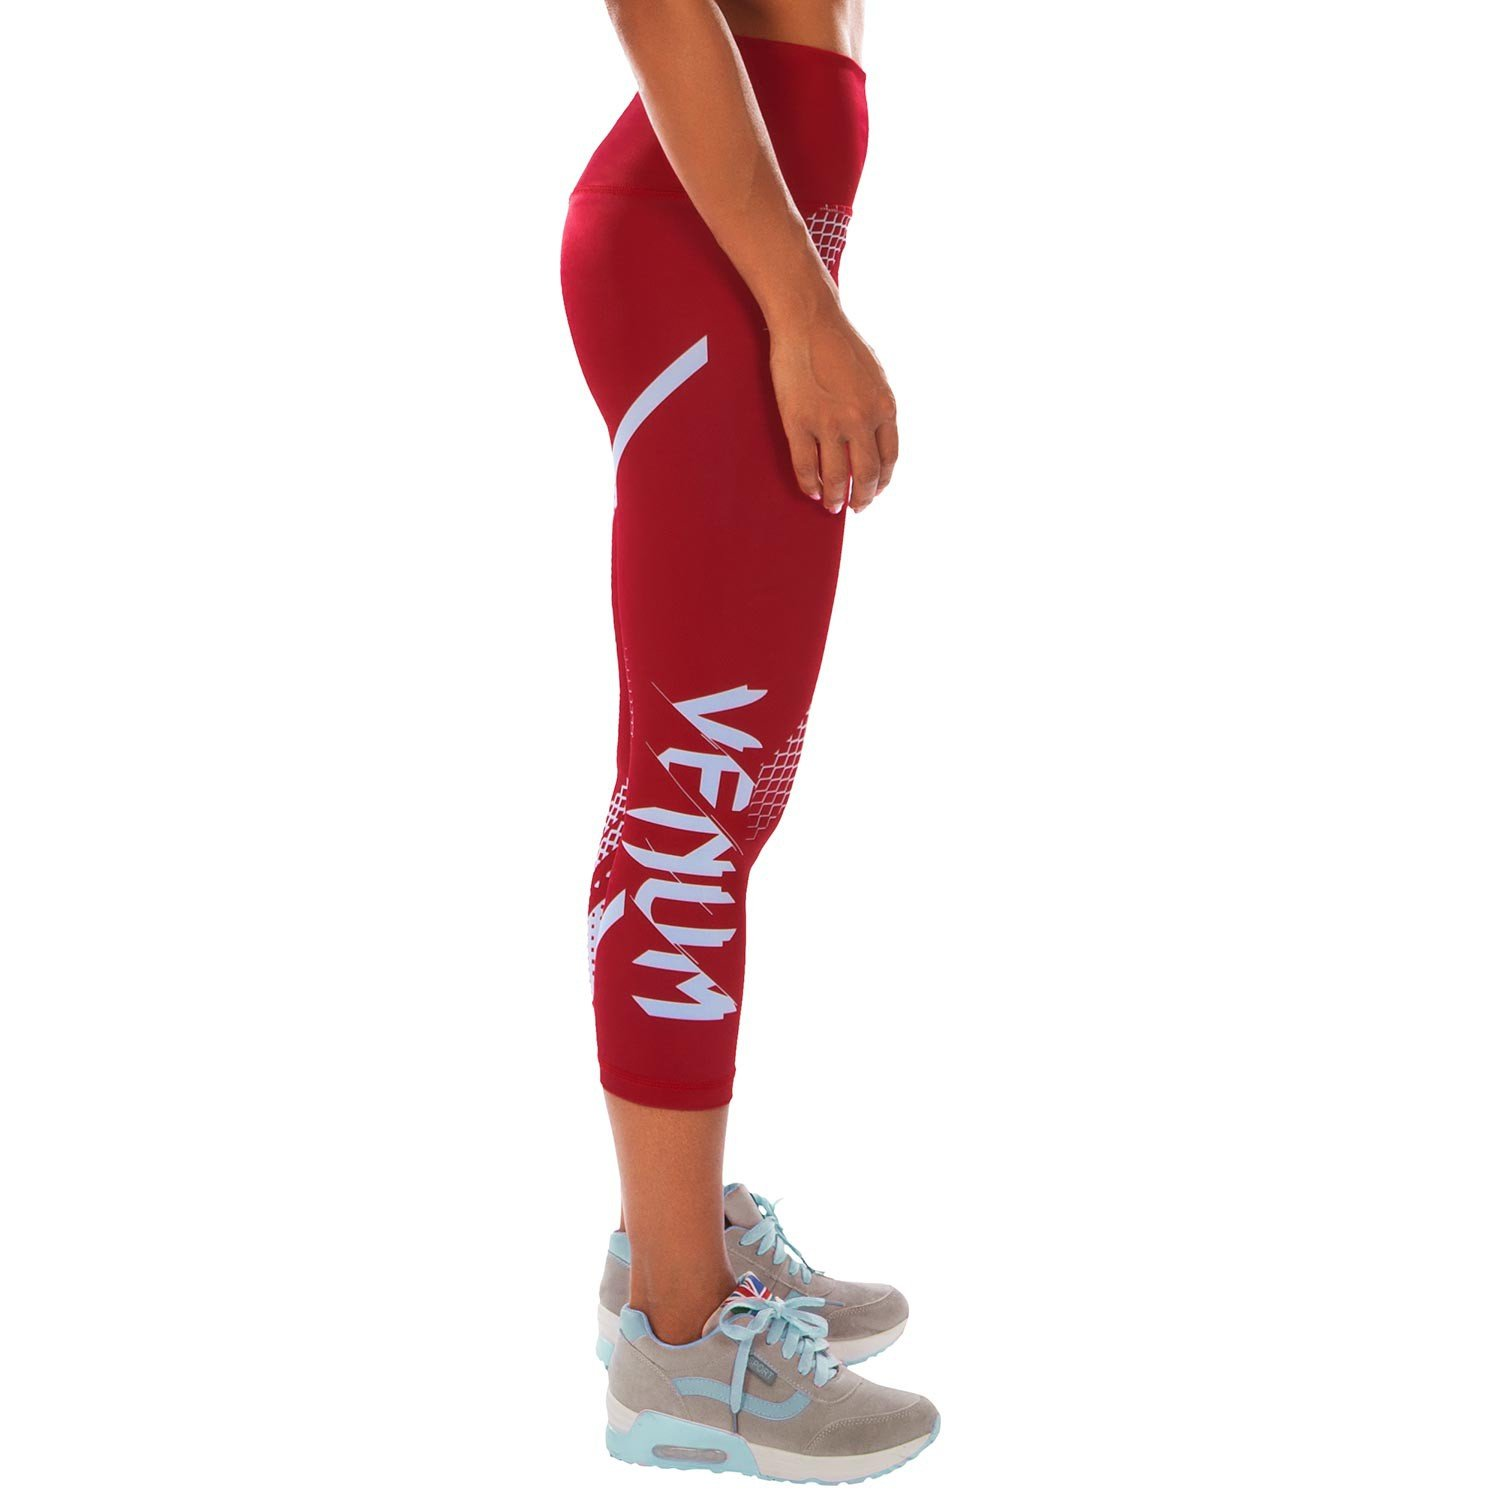 Red/white Geometric Print Athletic Capris - Rapid Leggings Crops Coral